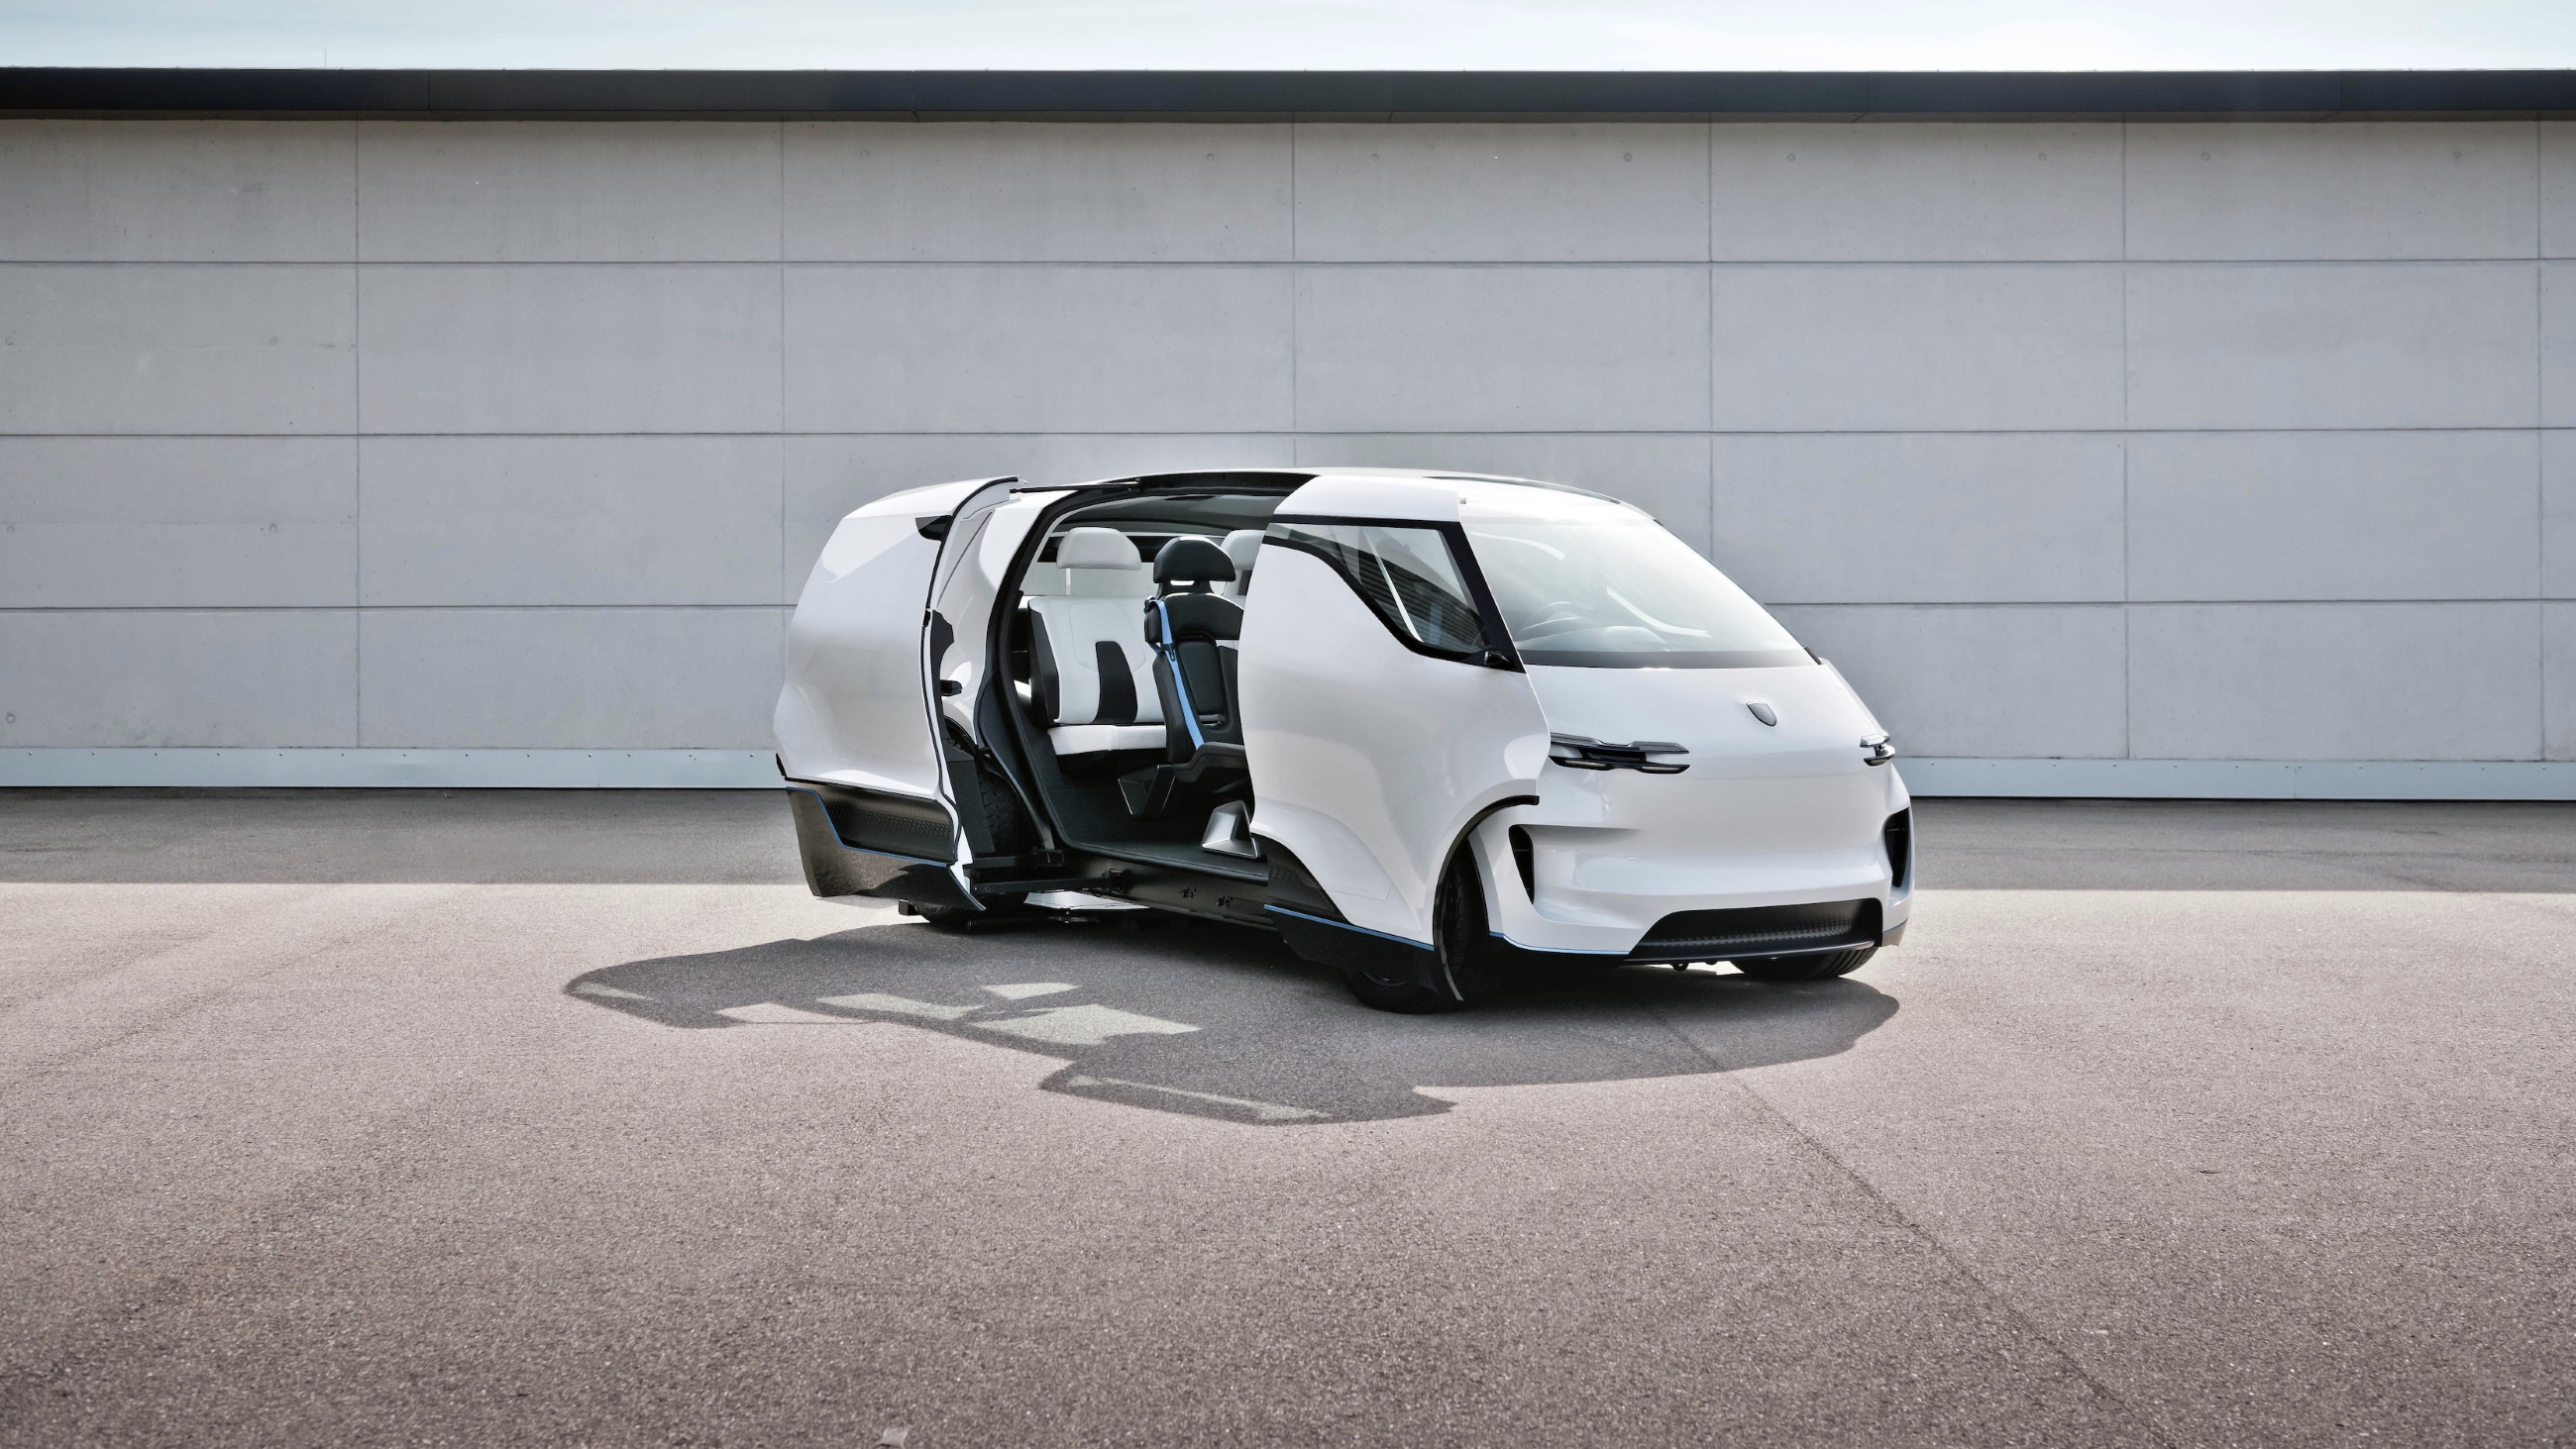 The Cabin of the Porsche Renndienst Concept Van Is a Protective Pod With a Soul